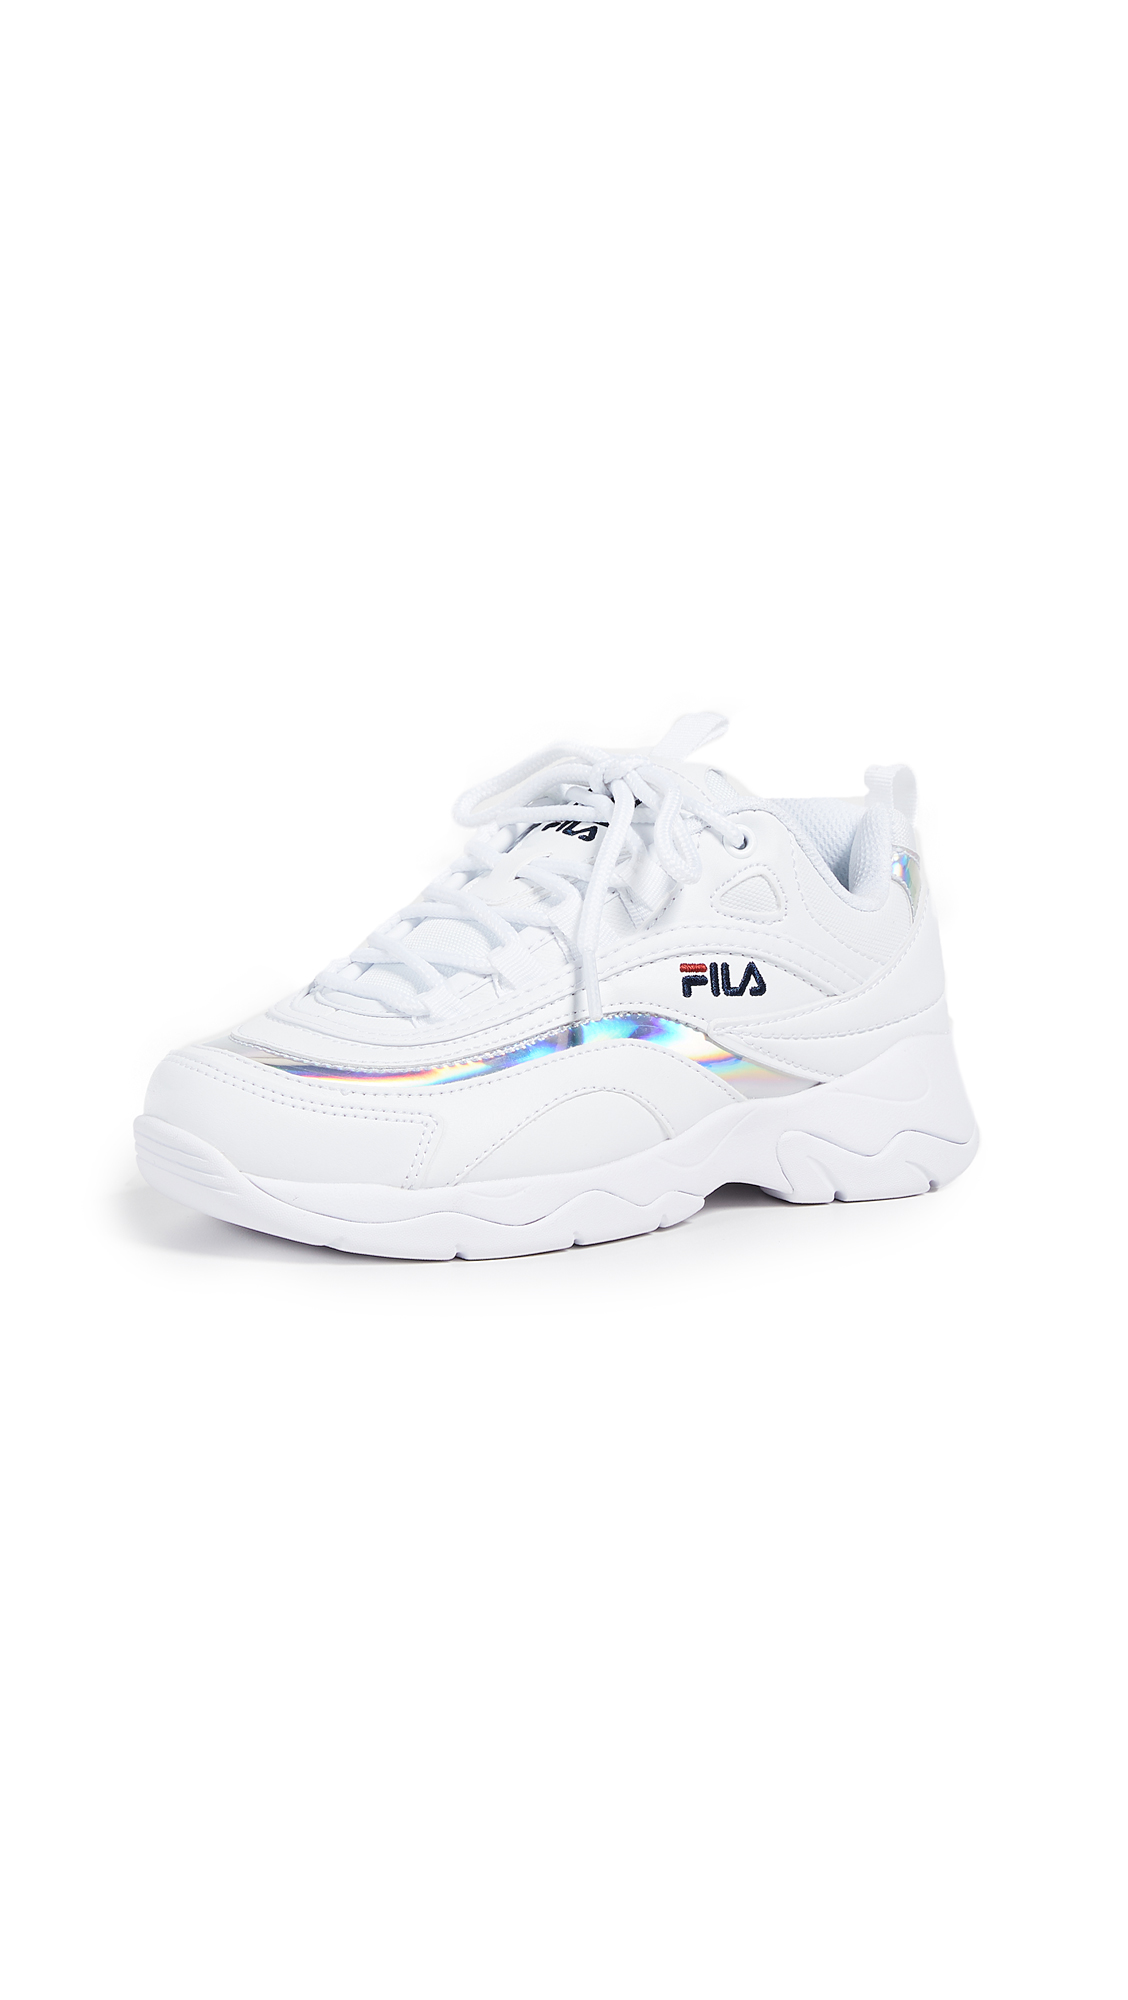 Fila Fila Ray Sneakers - White/Metallic Silver/White